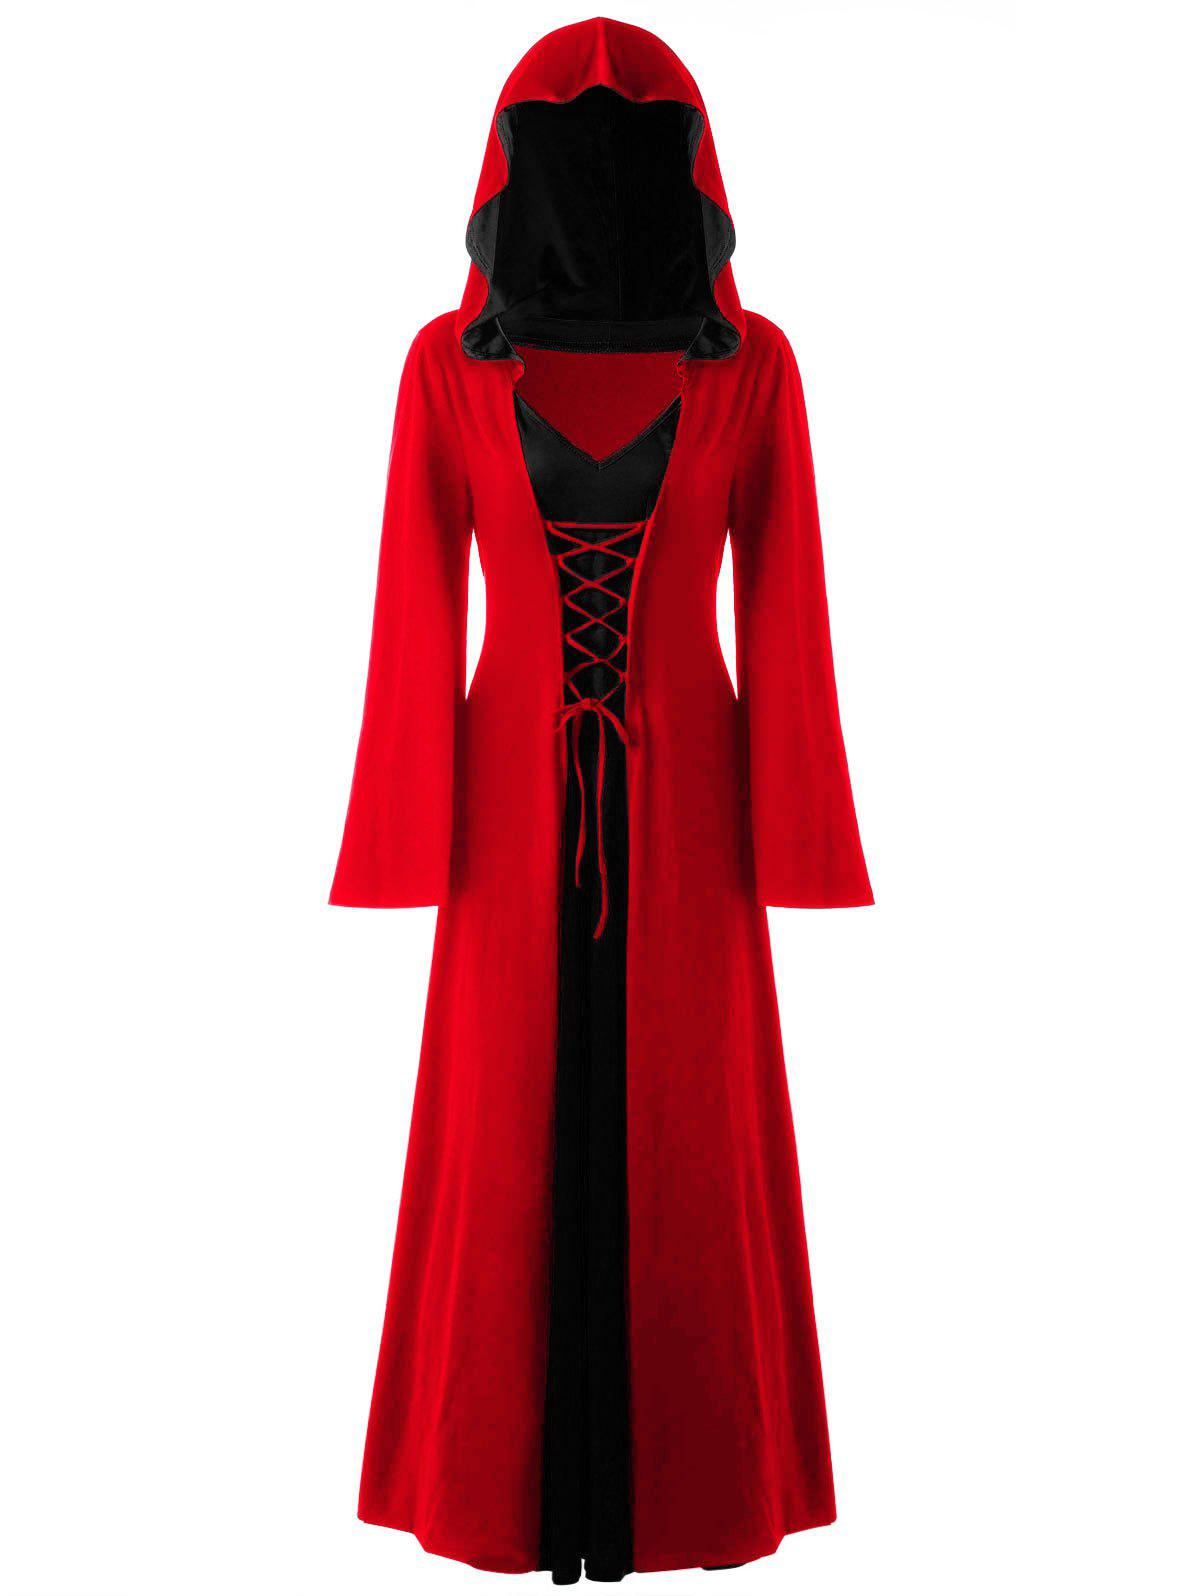 Halloween Plus Size Lace Up Hooded Maxi DressWOMEN<br><br>Size: 2XL; Color: AMERICAN BEAUTY; Style: Novelty; Material: Polyester,Spandex; Silhouette: A-Line; Dresses Length: Ankle-Length; Neckline: Hooded; Sleeve Length: Long Sleeves; Pattern Type: Solid; With Belt: No; Season: Fall,Spring; Weight: 0.6700kg; Package Contents: 1 x Dress;